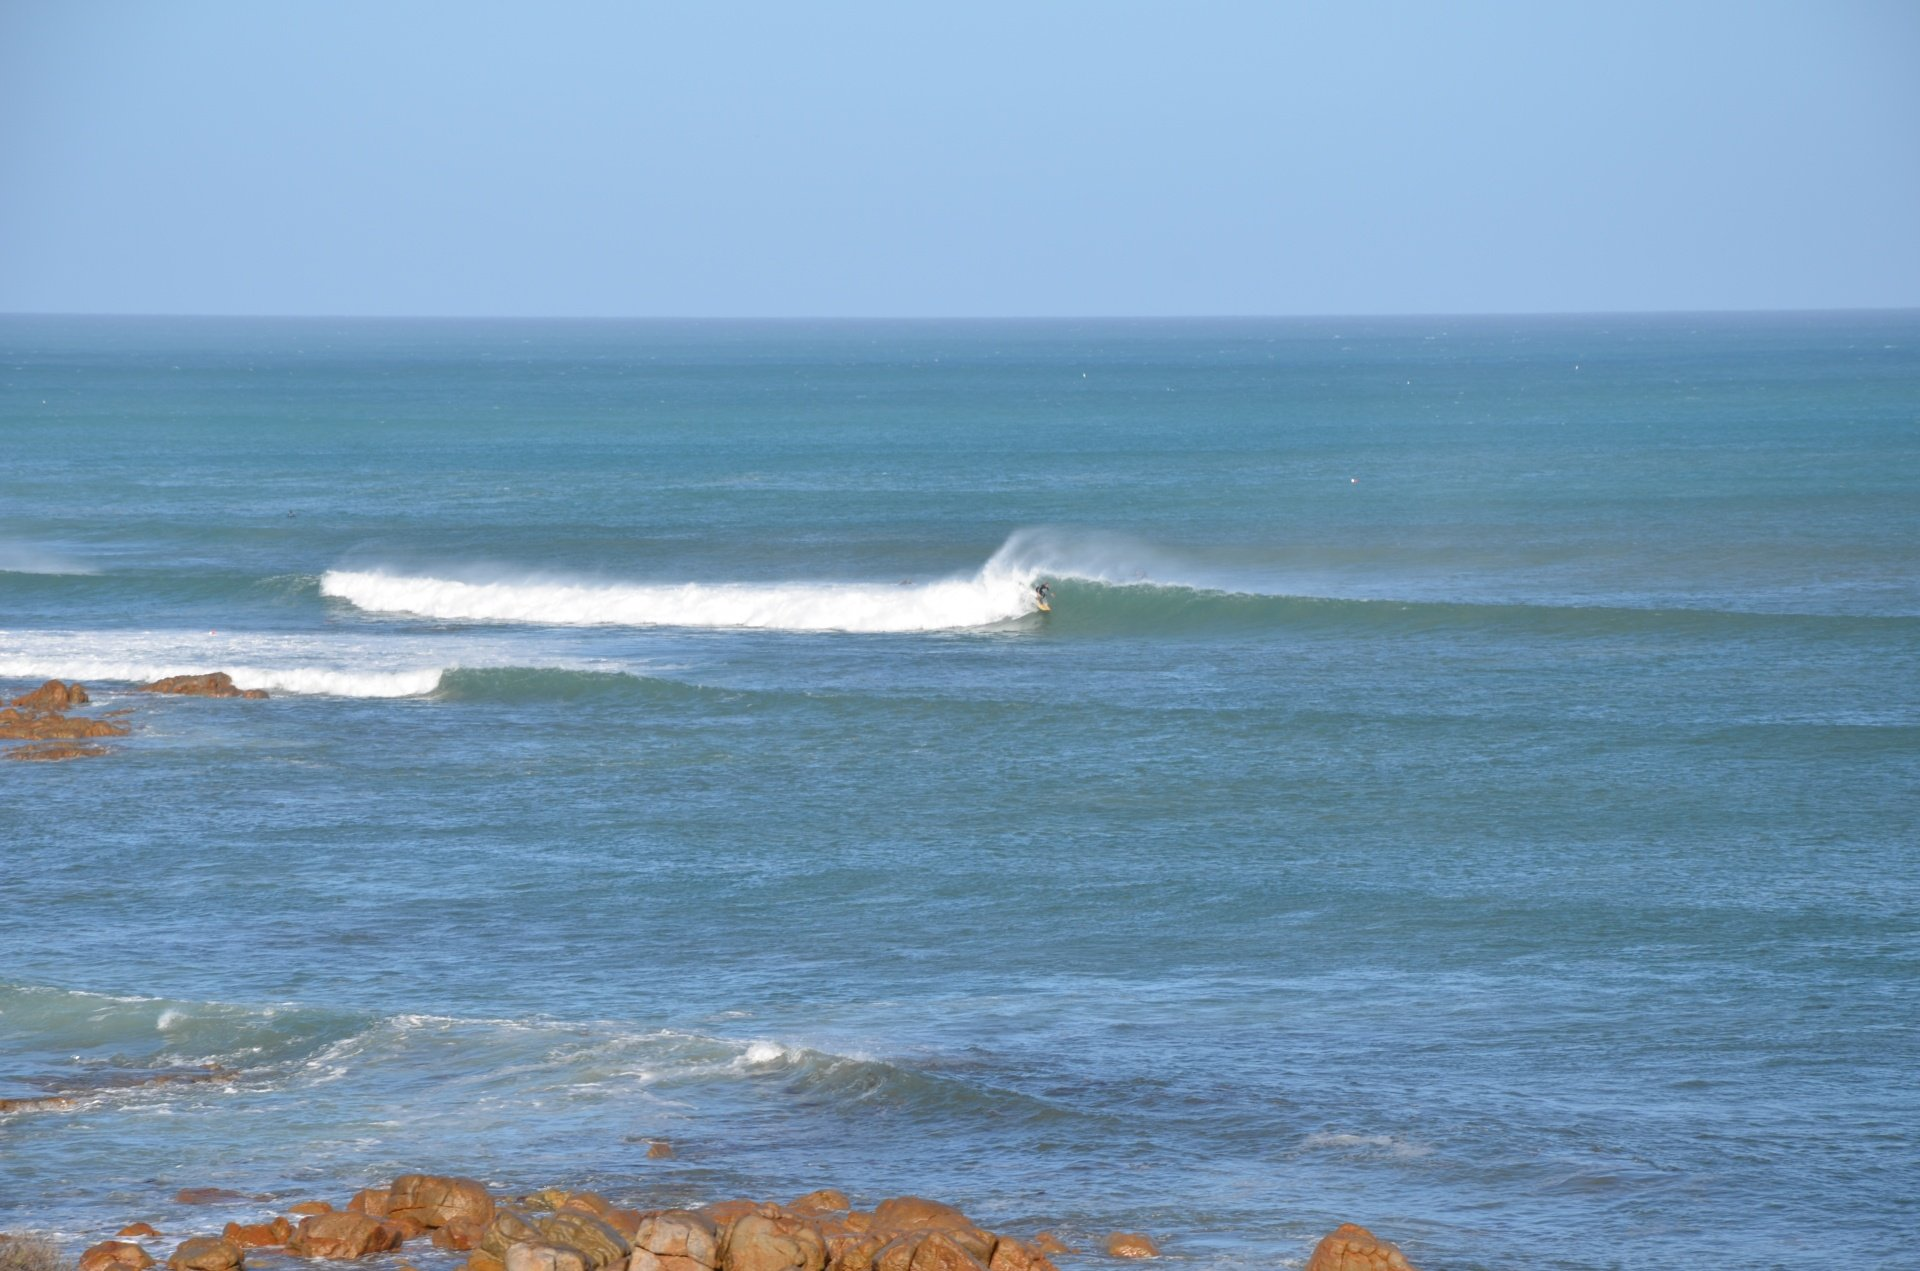 5'7 Quad's photo of Salmon Hole